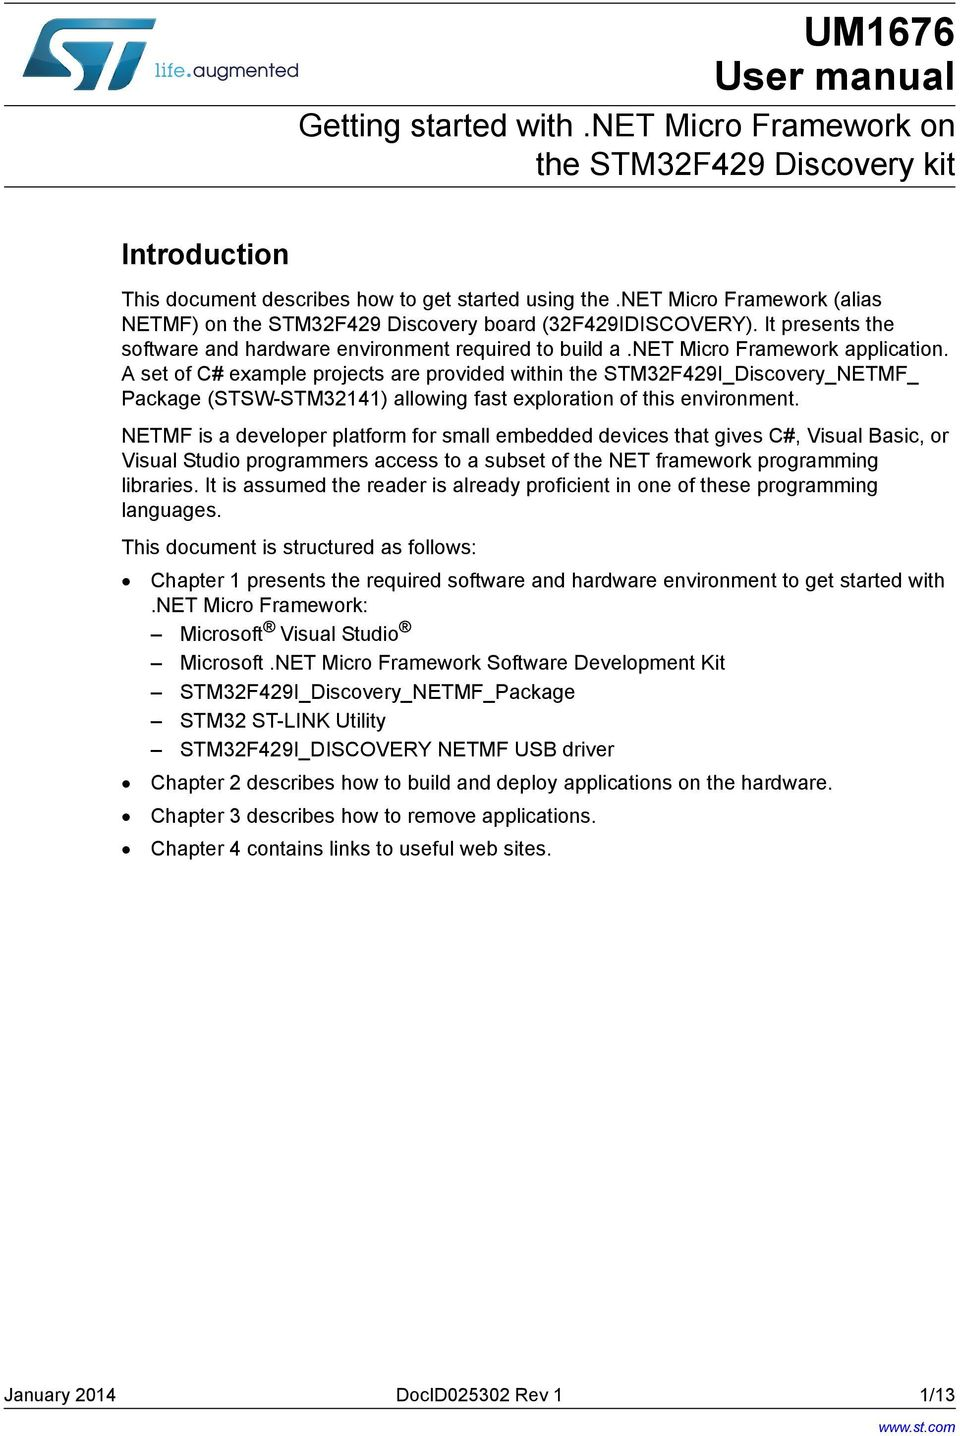 UM1676 User manual. Getting started with.net Micro Framework ... on